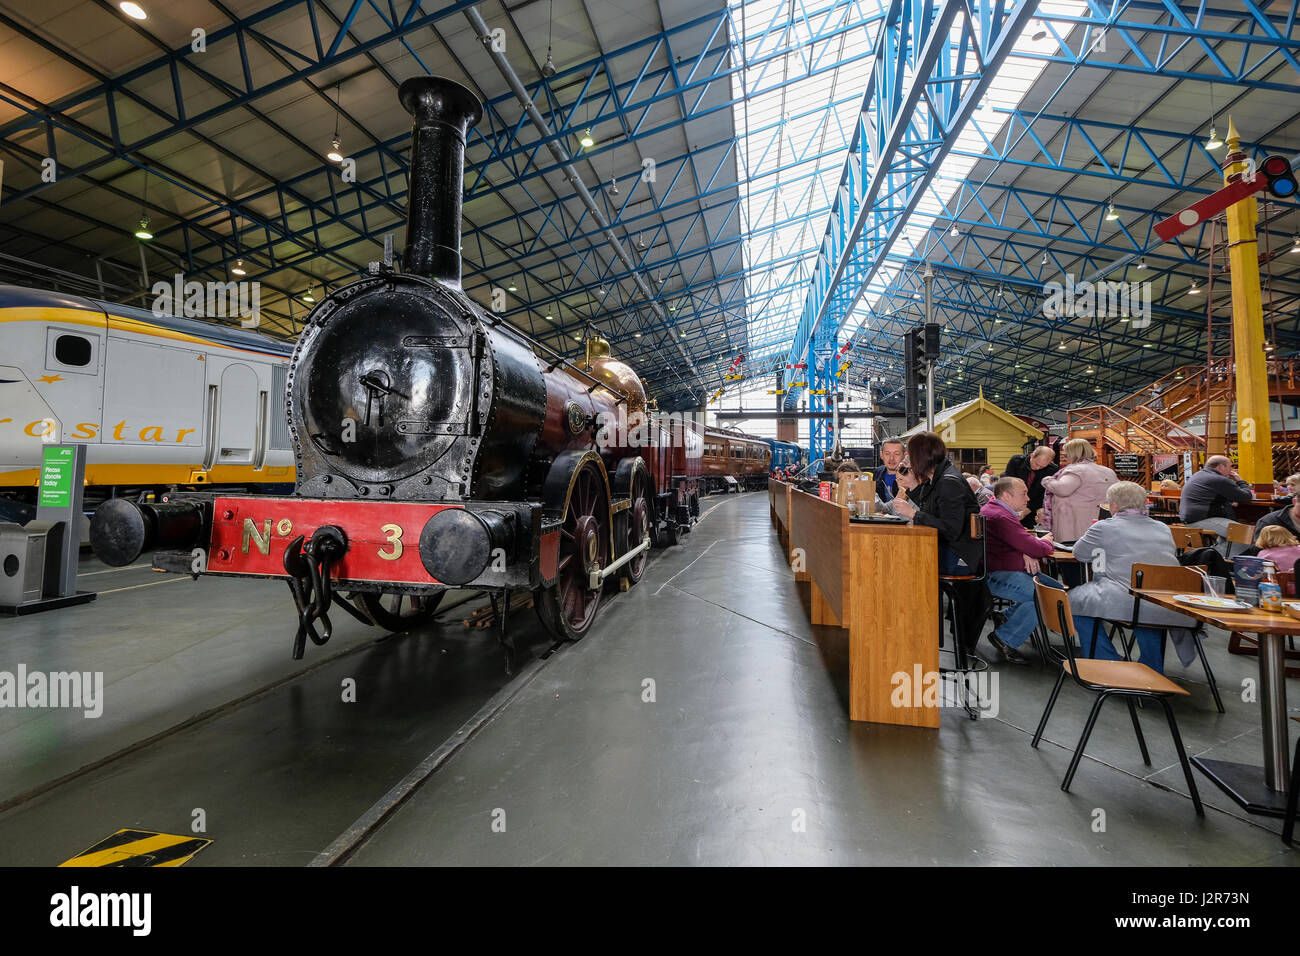 Dining area next to the exhibits inside The National Railway Museum in York - Stock Image